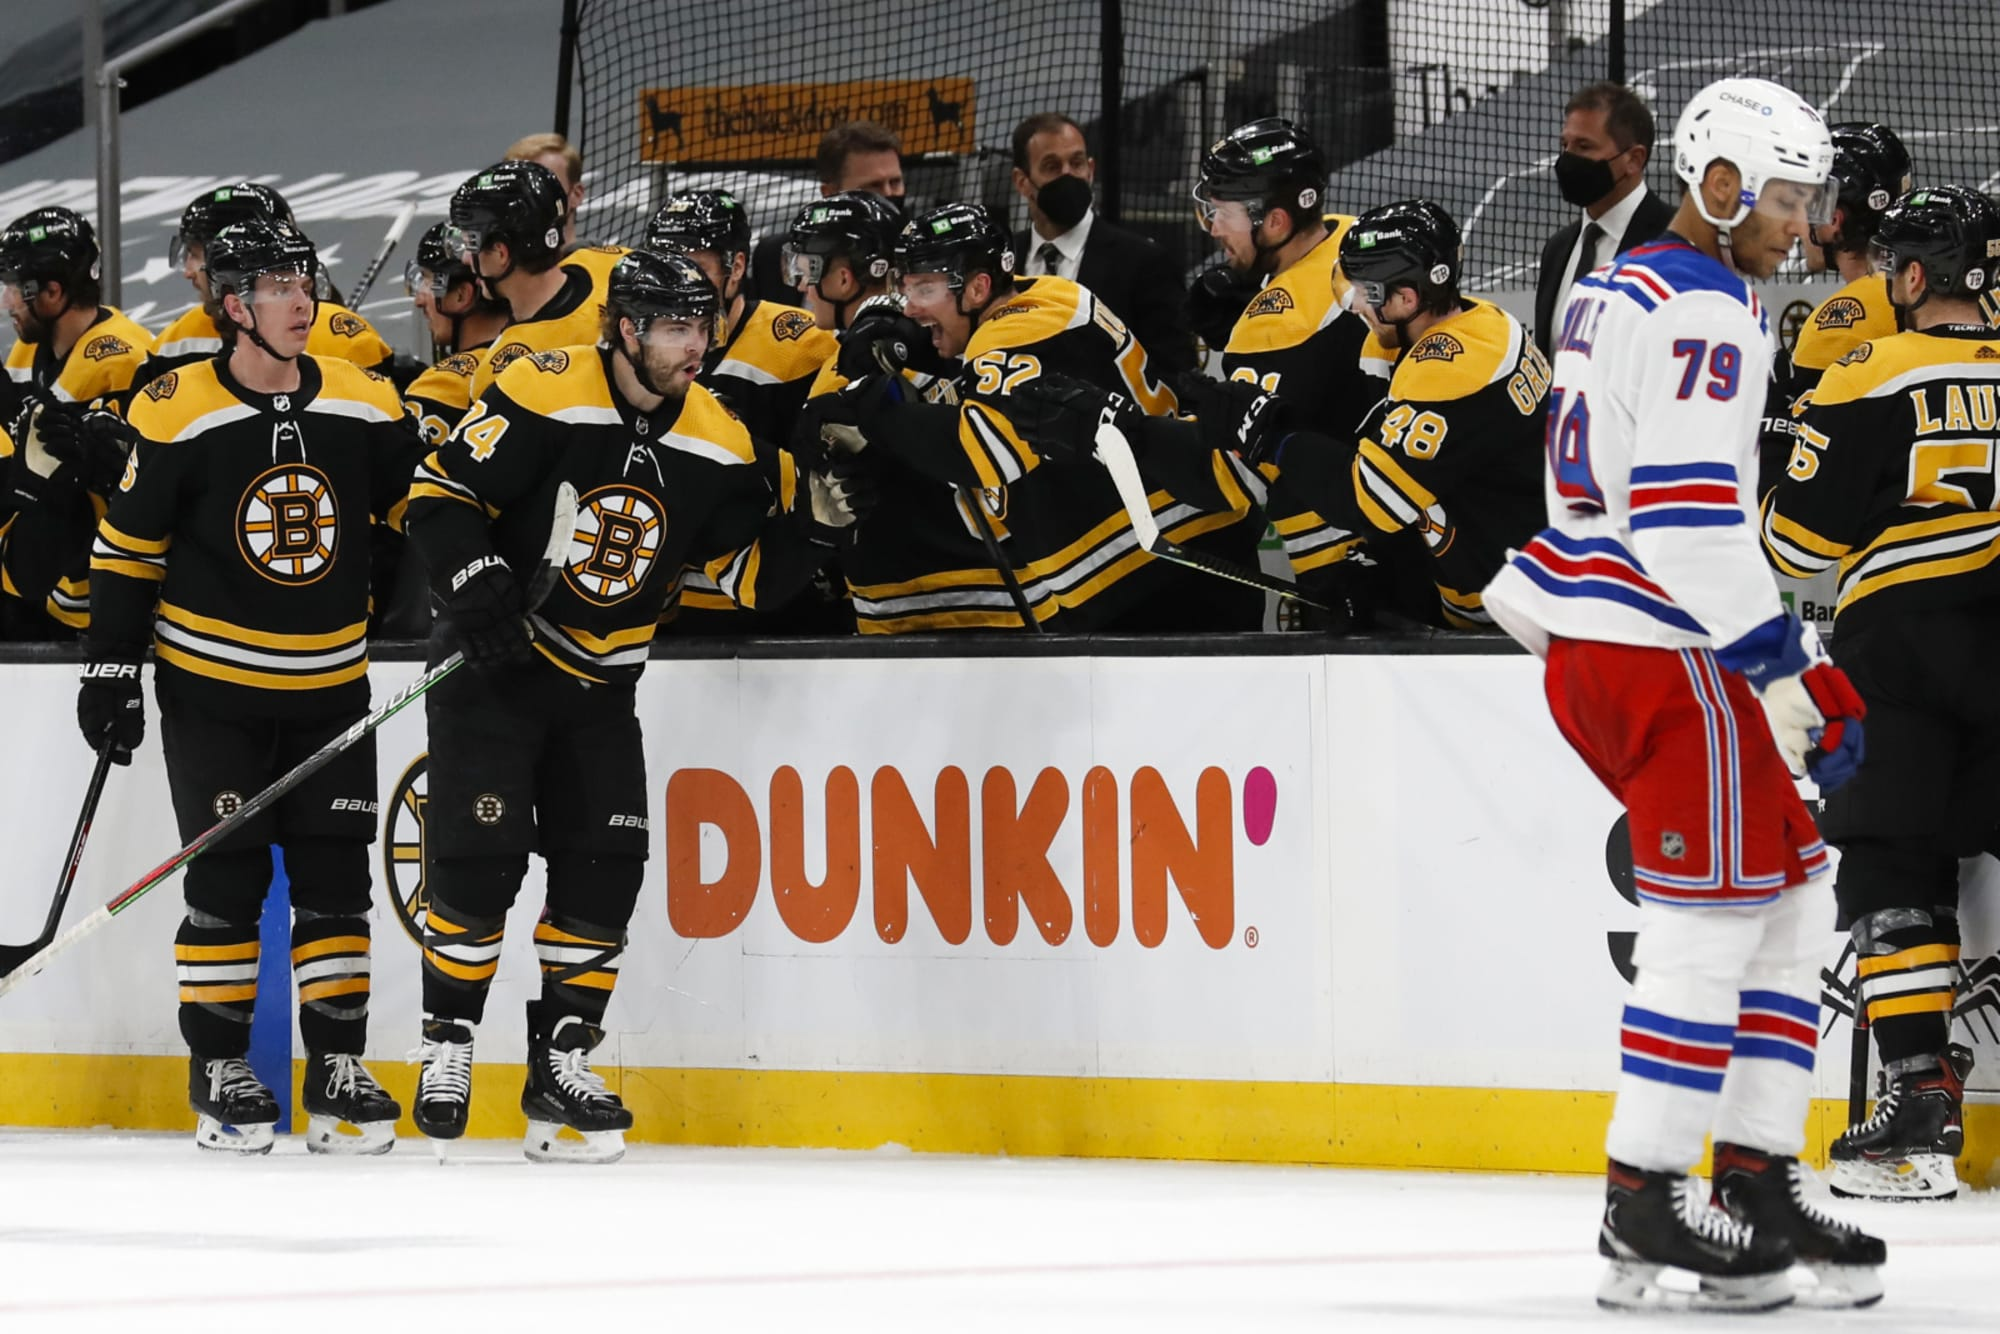 Boston Bruins: Is This the Start of a Breakout?